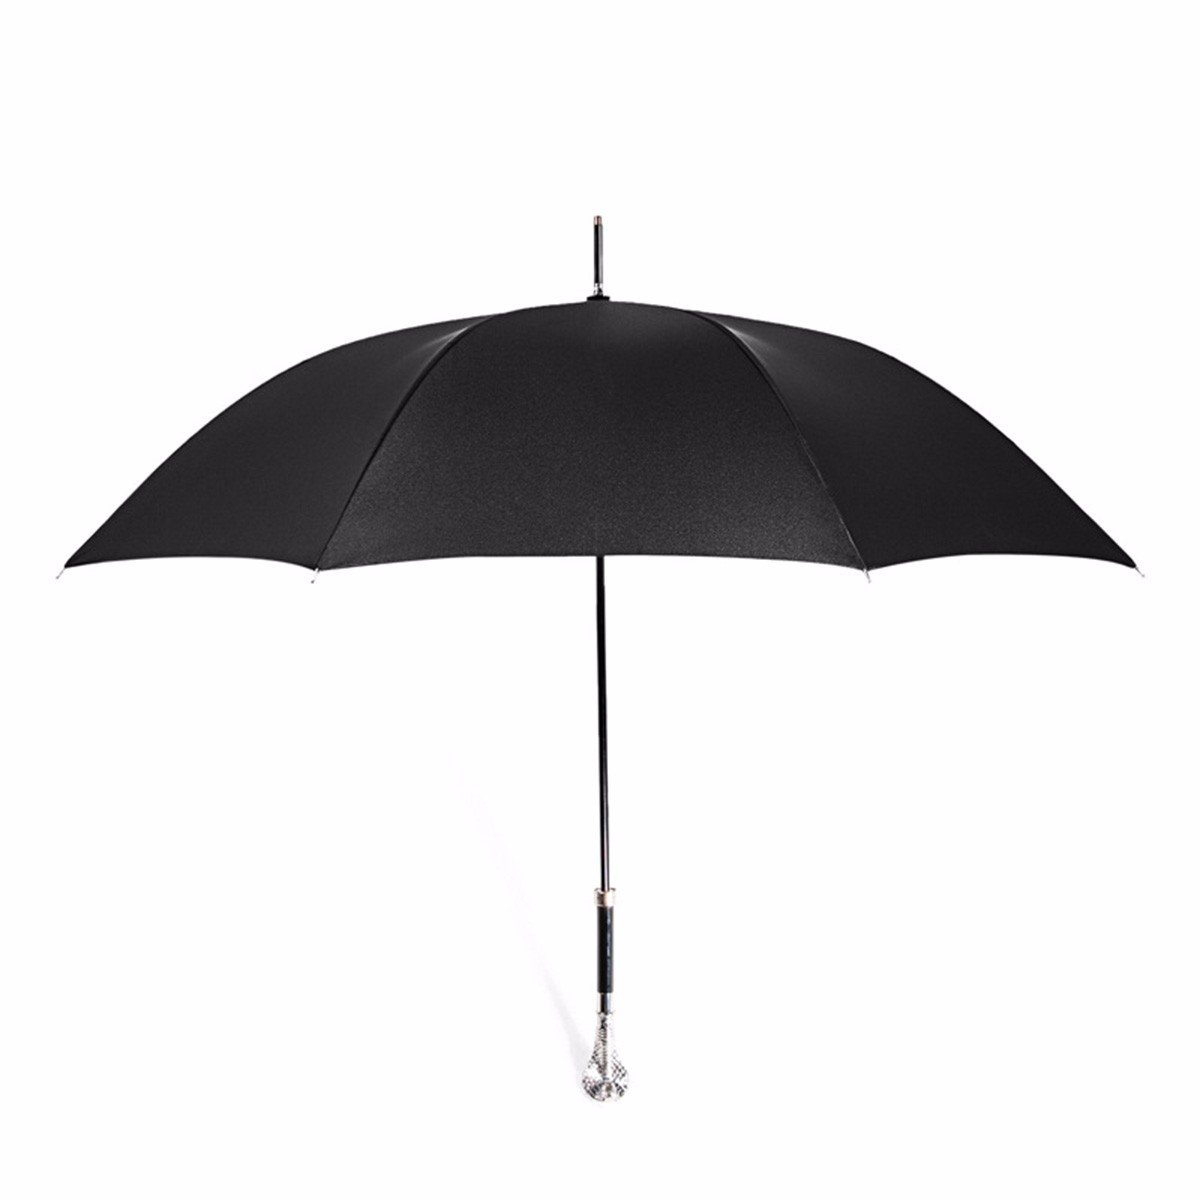 SSBY Straight Handle Golf Umbrella Long Handled High-Grade Business Umbrella 55Cmsilvery